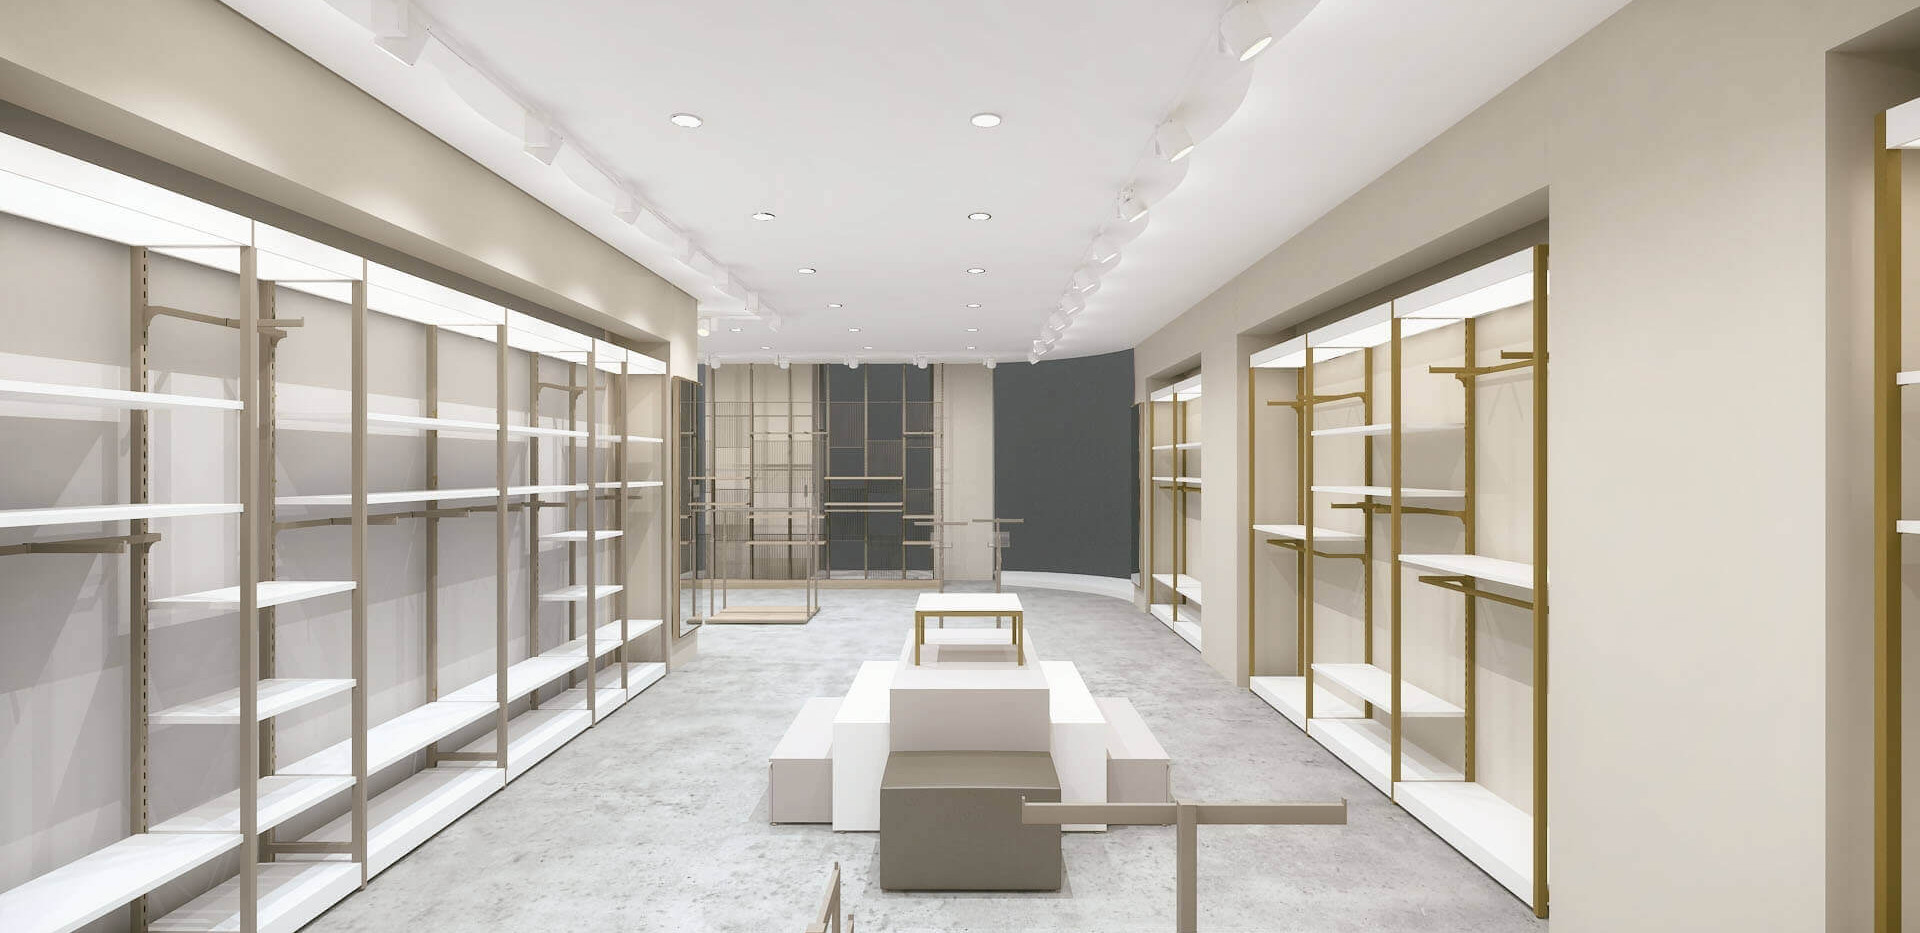 Cinici_-_Fashion_Store_Shop_Design-13.jp